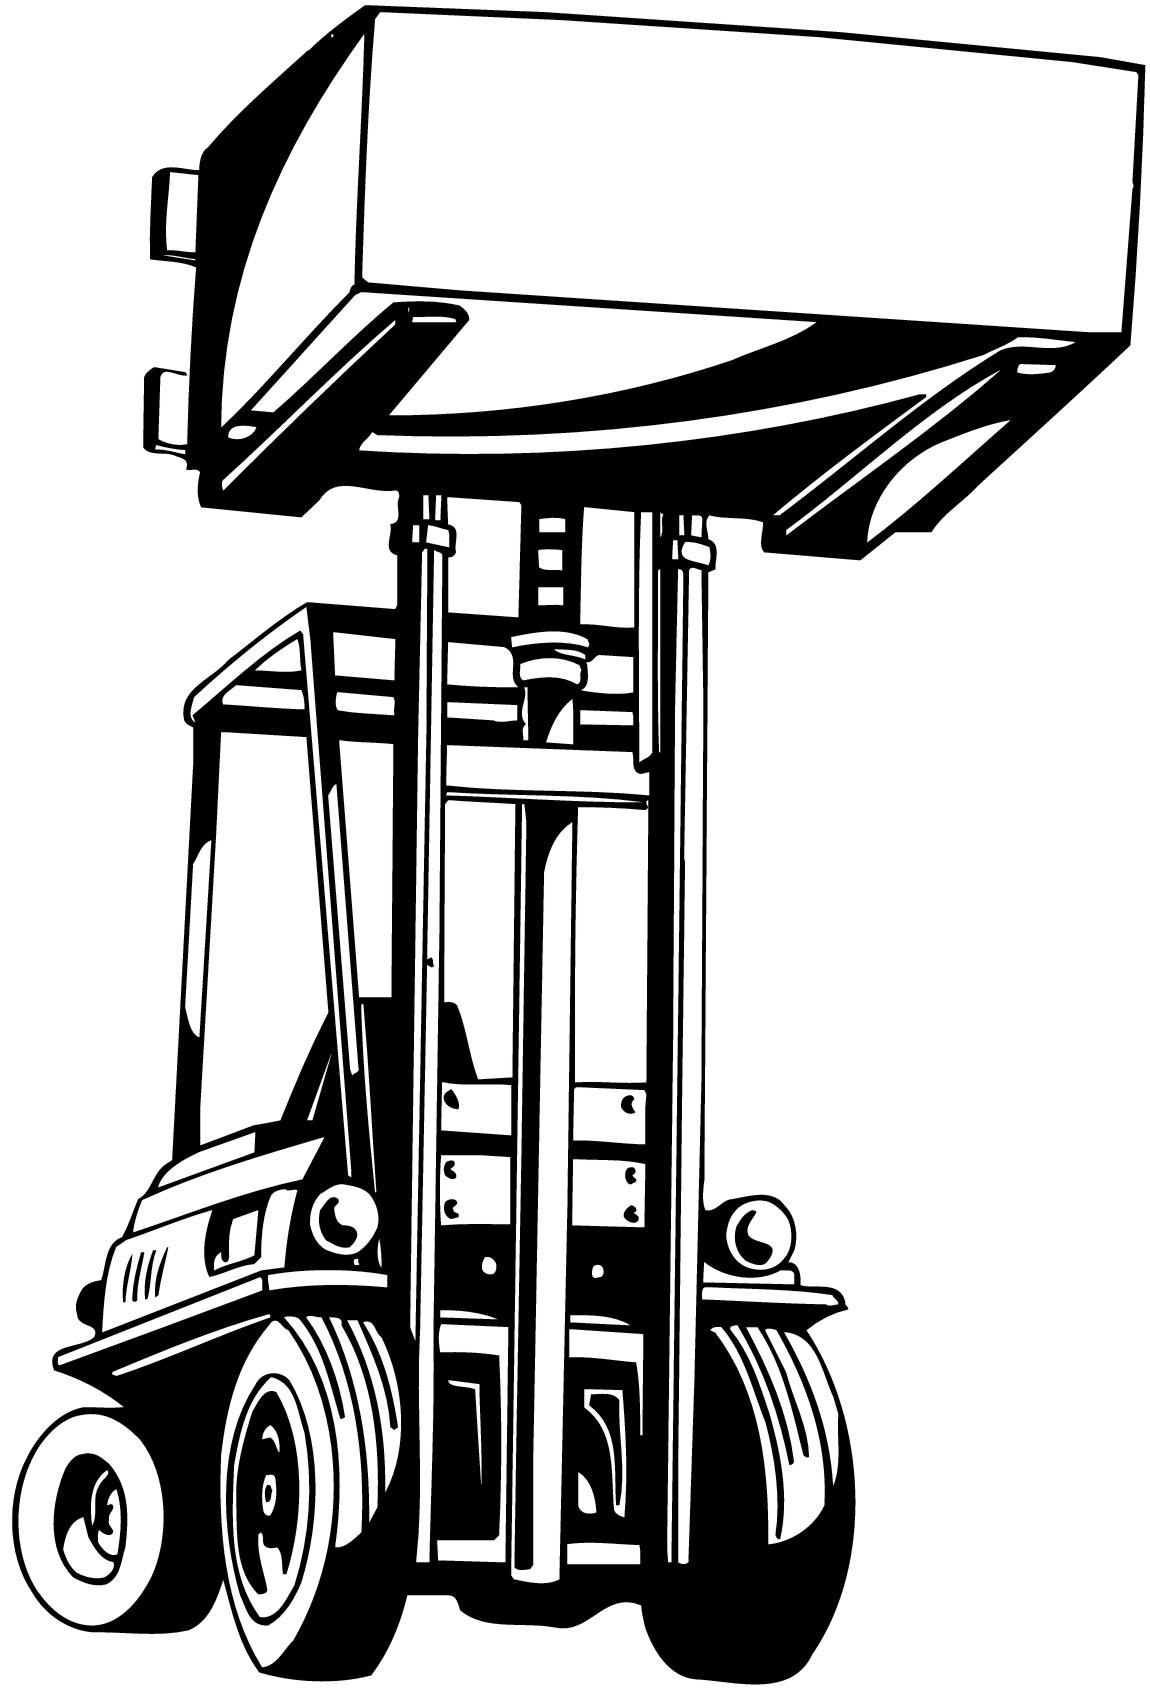 Are you #renting a #forklift